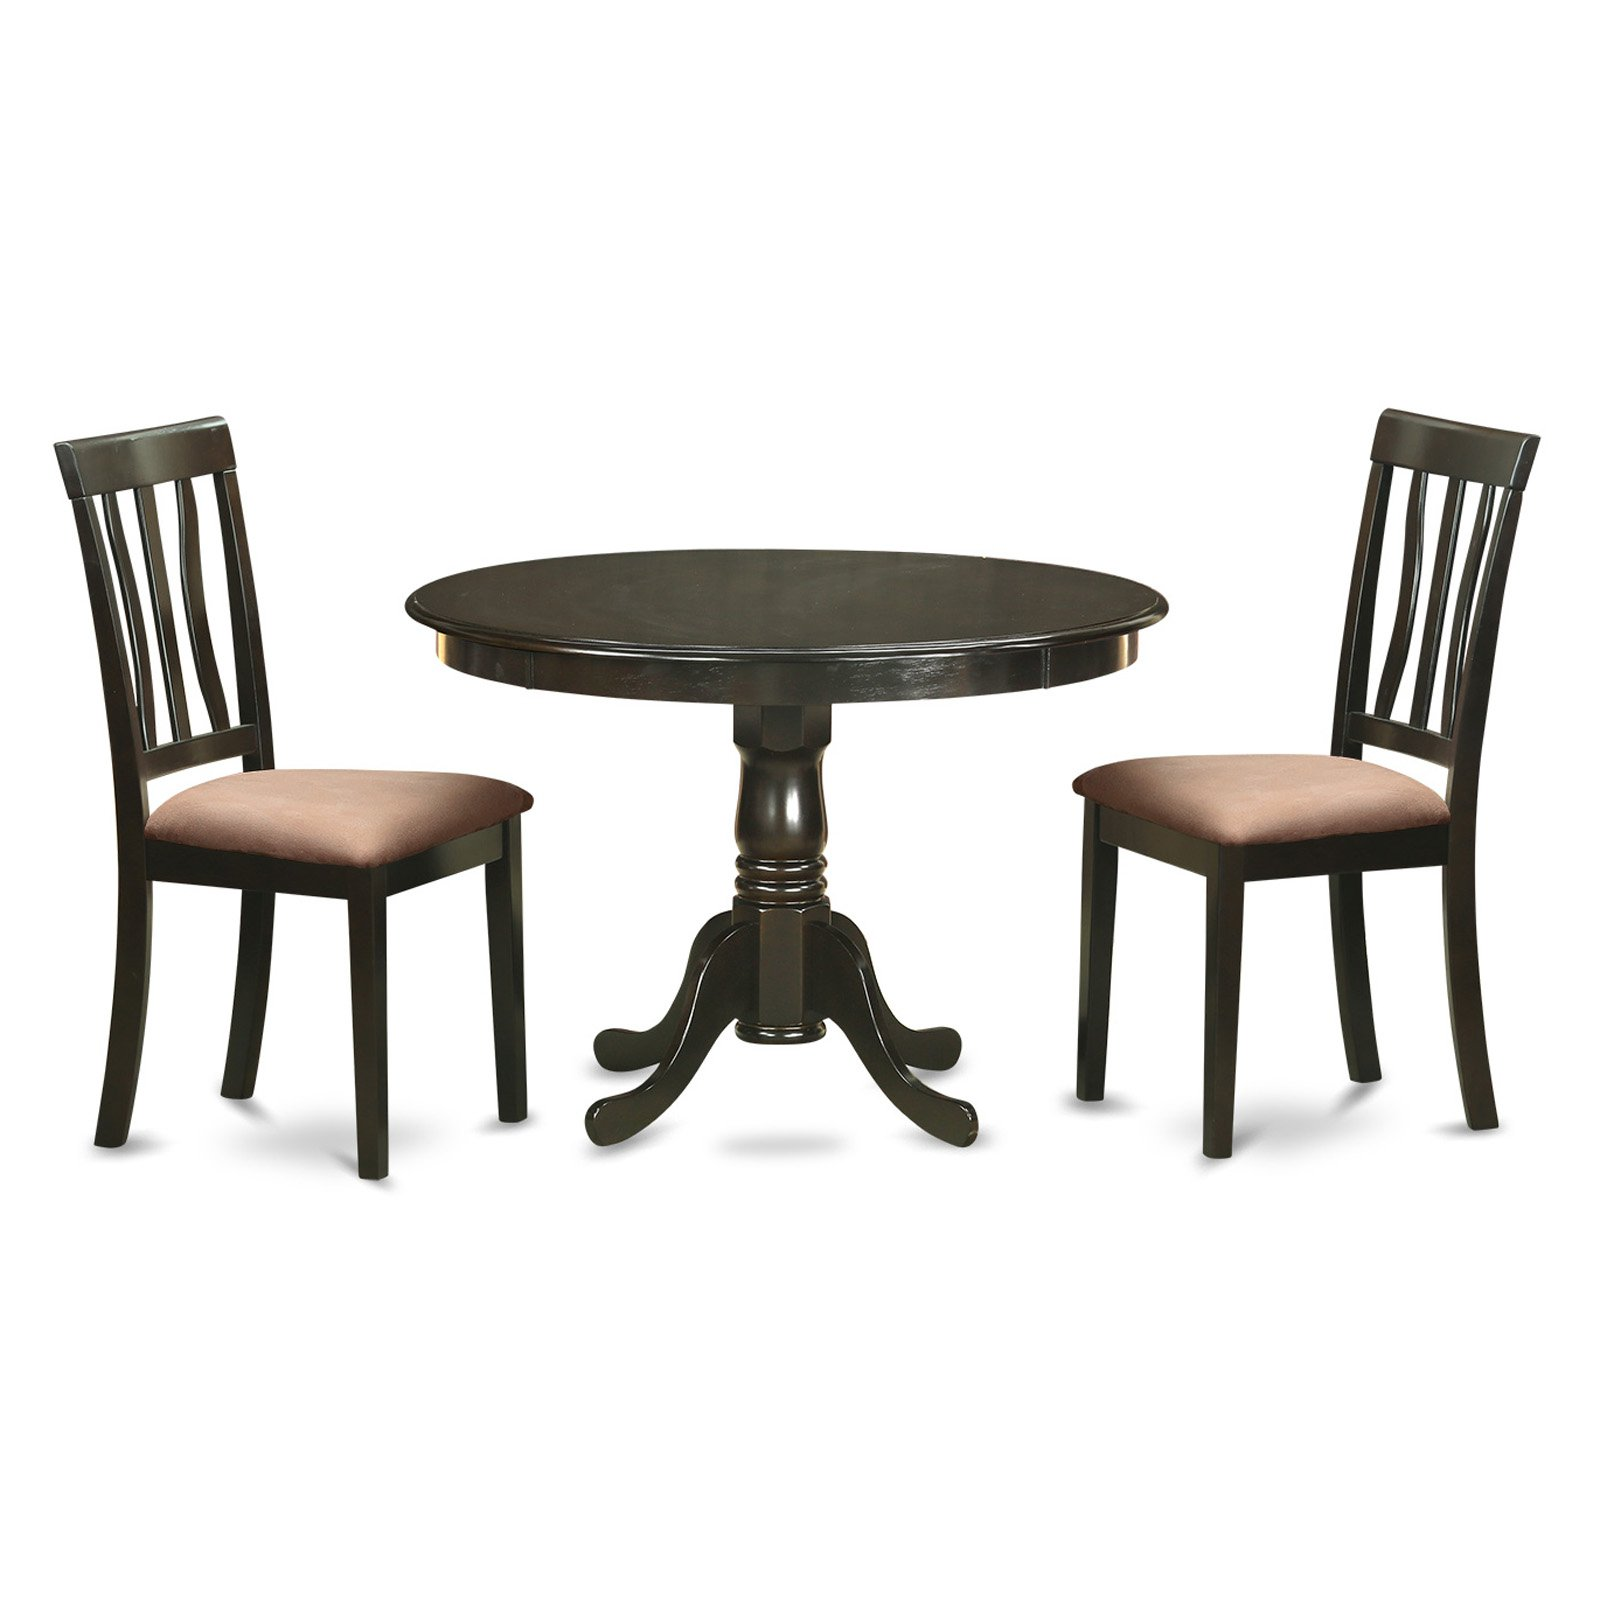 East West Furniture Hartland 3 Piece Splat Back Dining Table Set